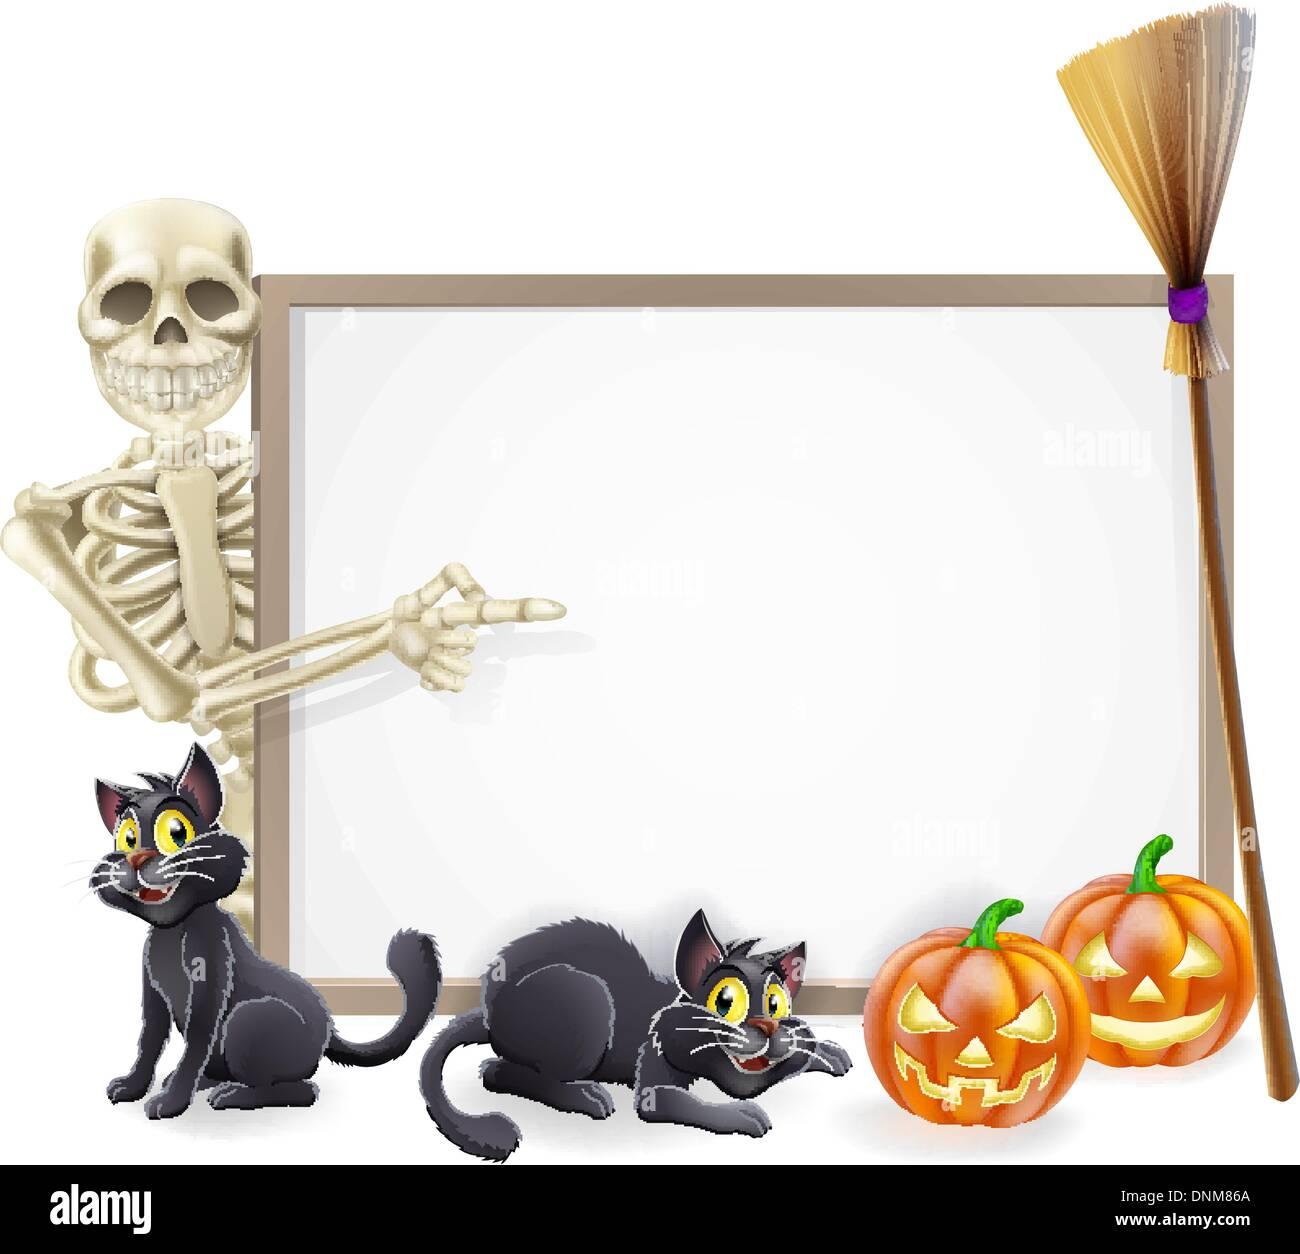 Broom Stick Bunny Mirror: Kids Peeping Cut Out Stock Images & Pictures